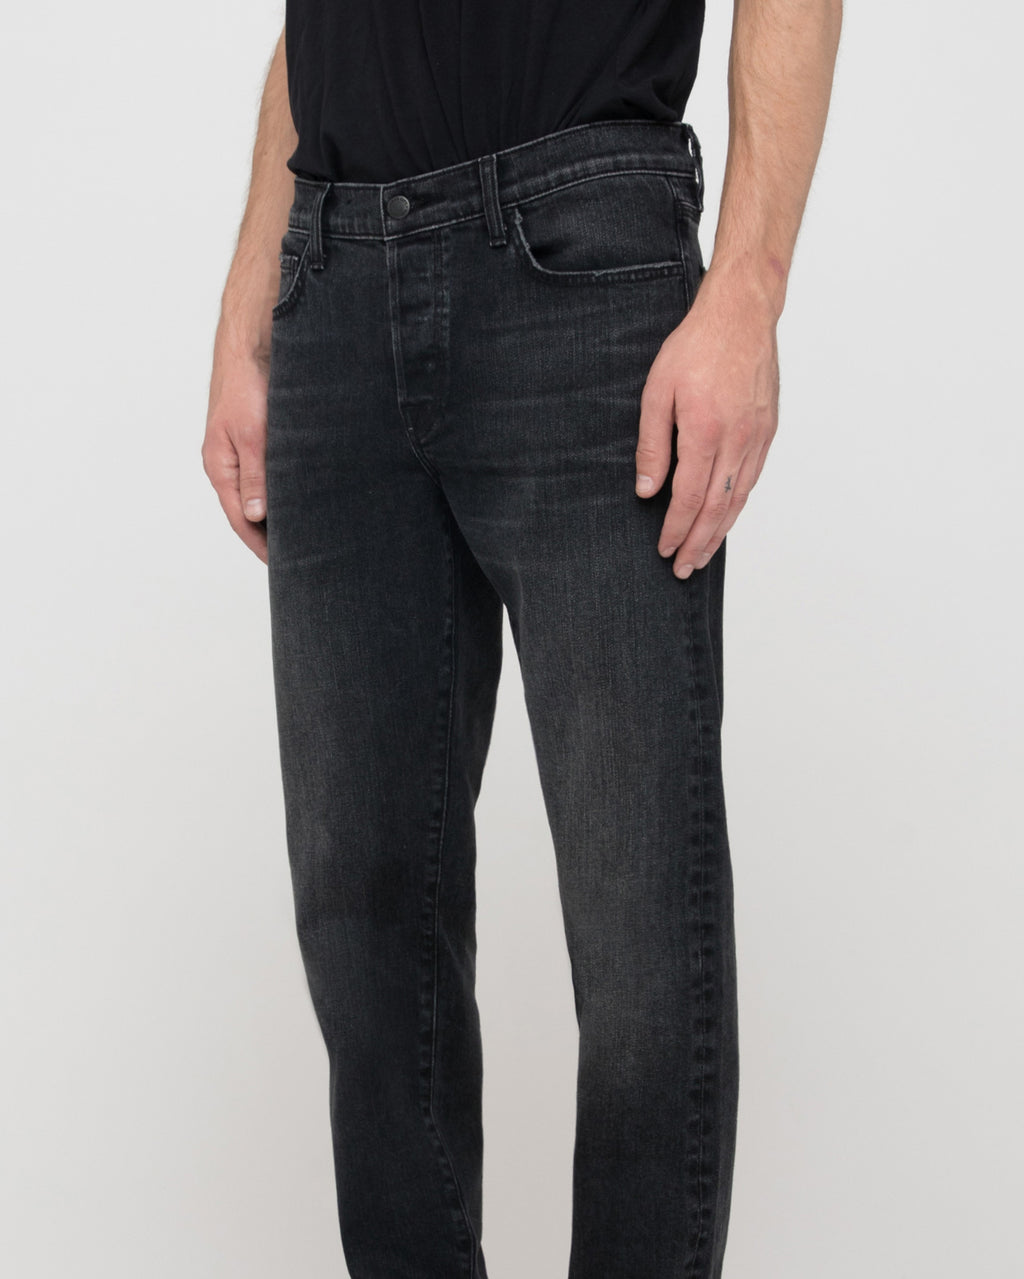 The Henley Jean in Rango